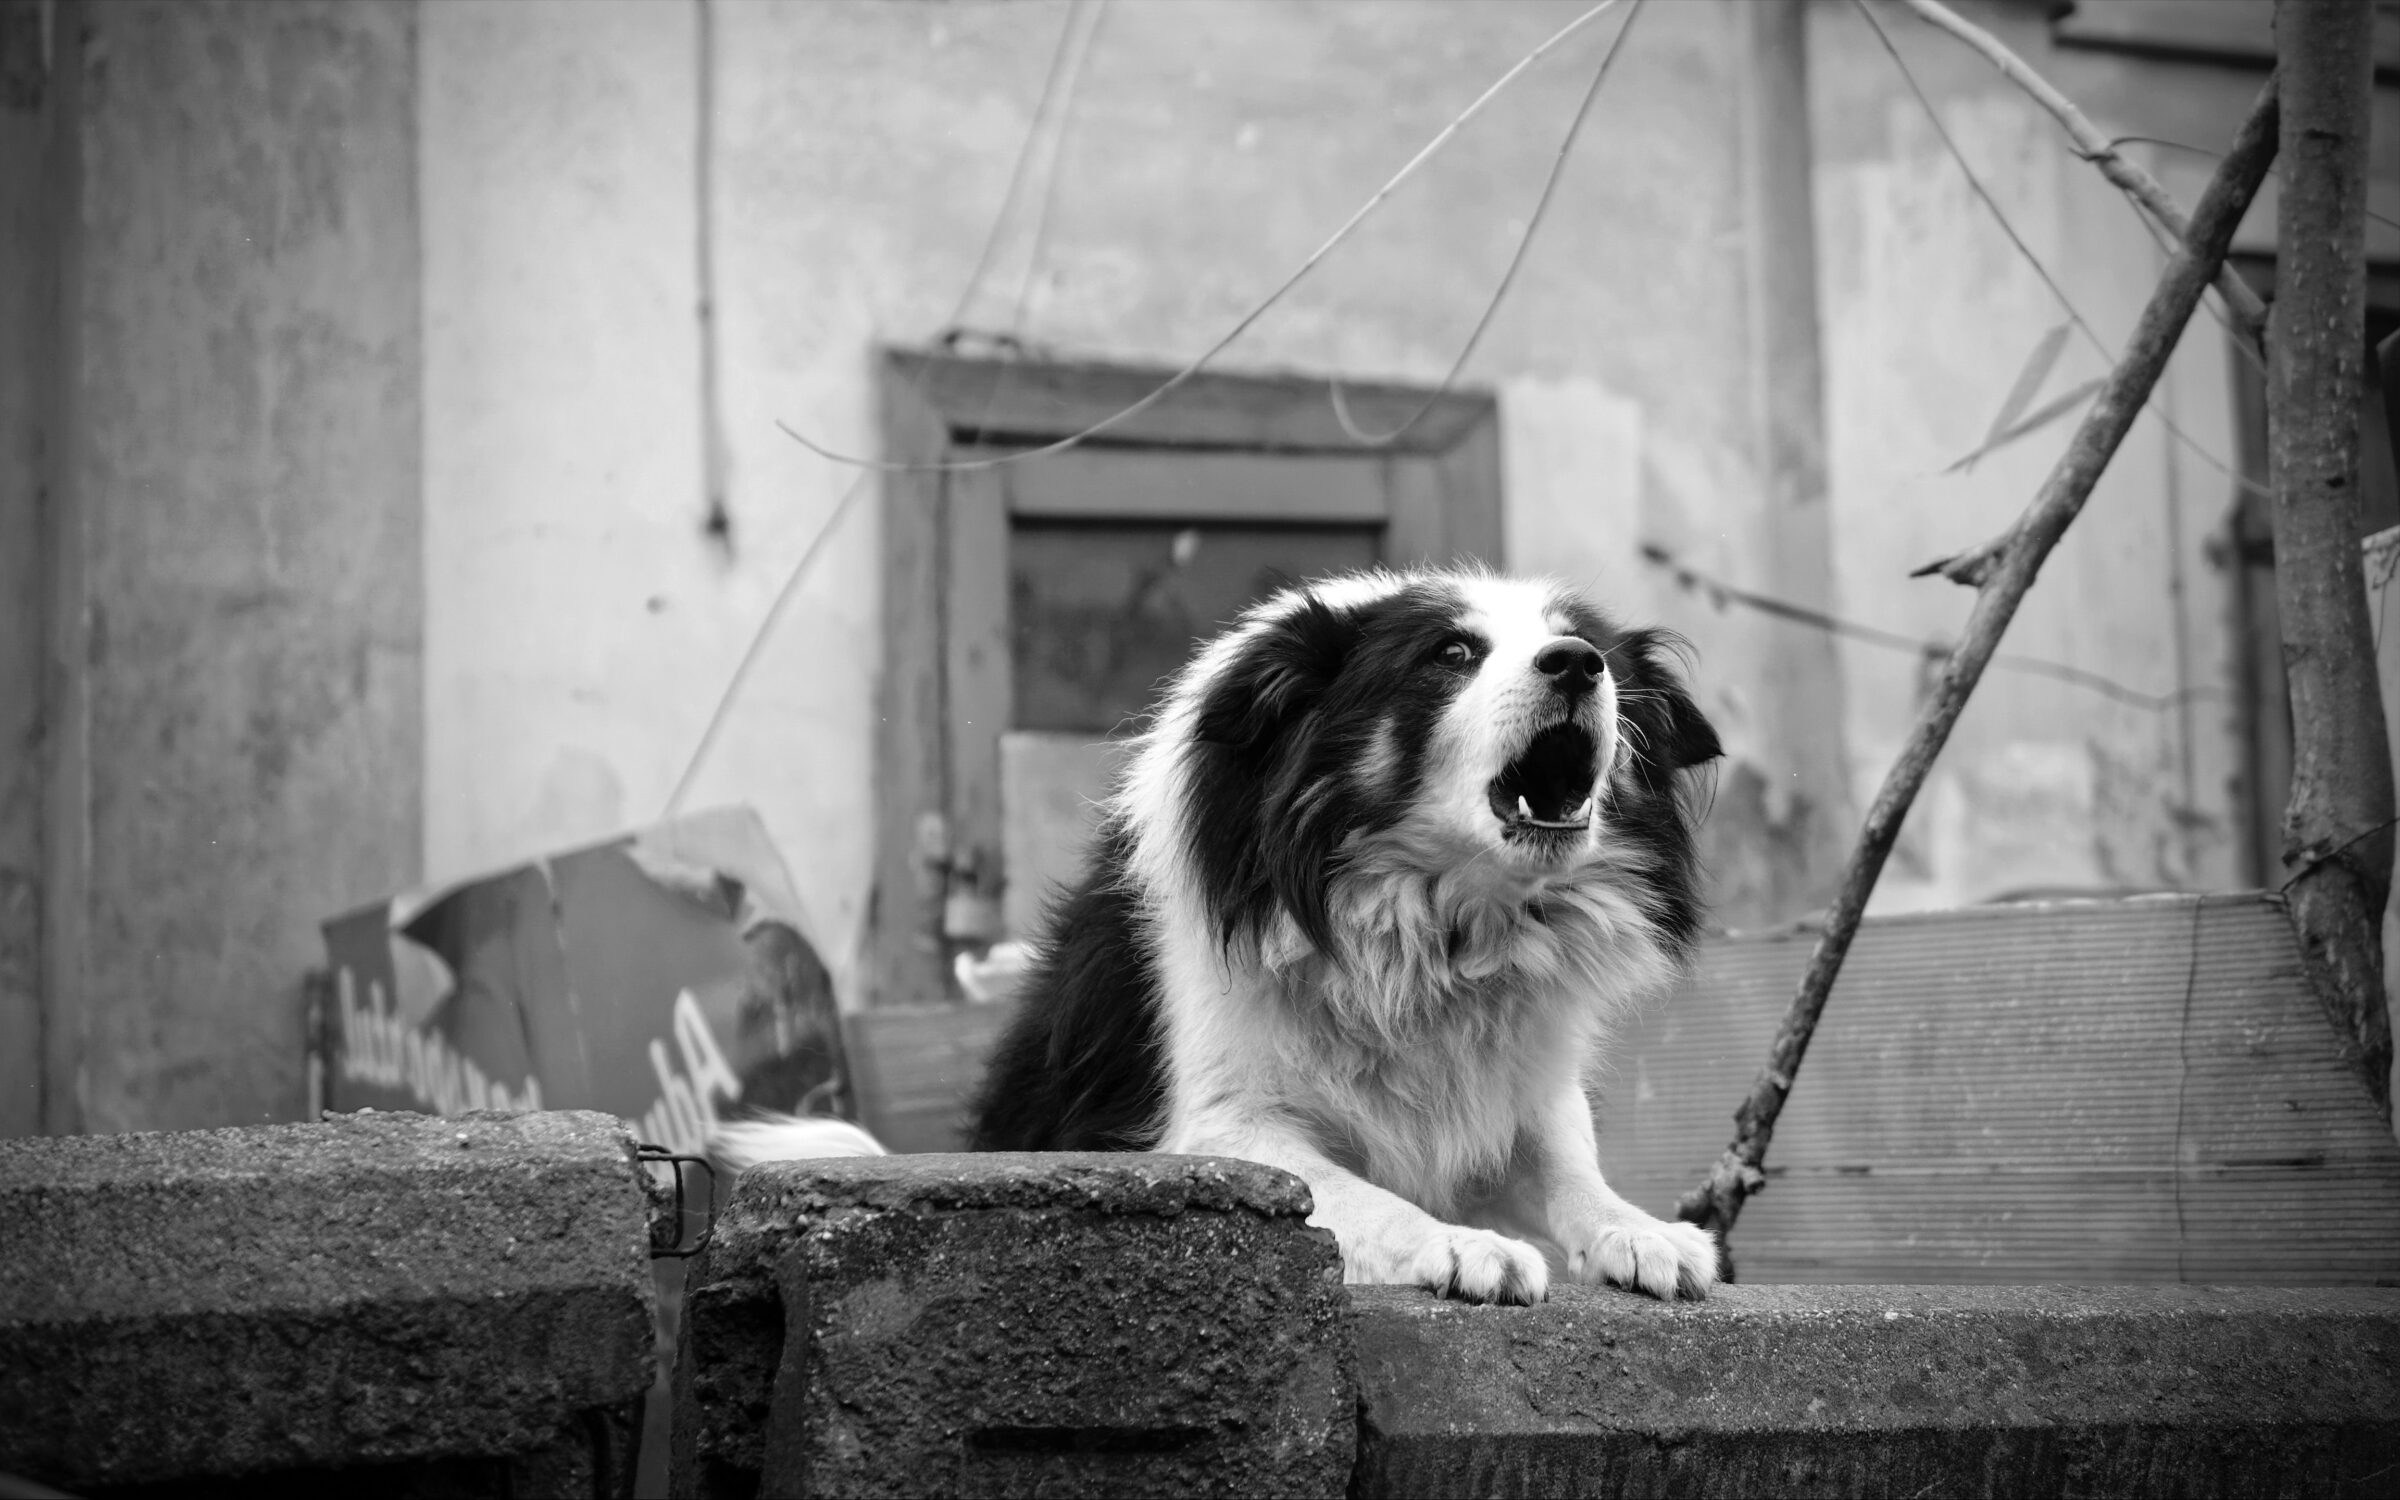 Black and White photo. Barking furry collie dog with front paws on cement wall. Old apartment building exterior in background.